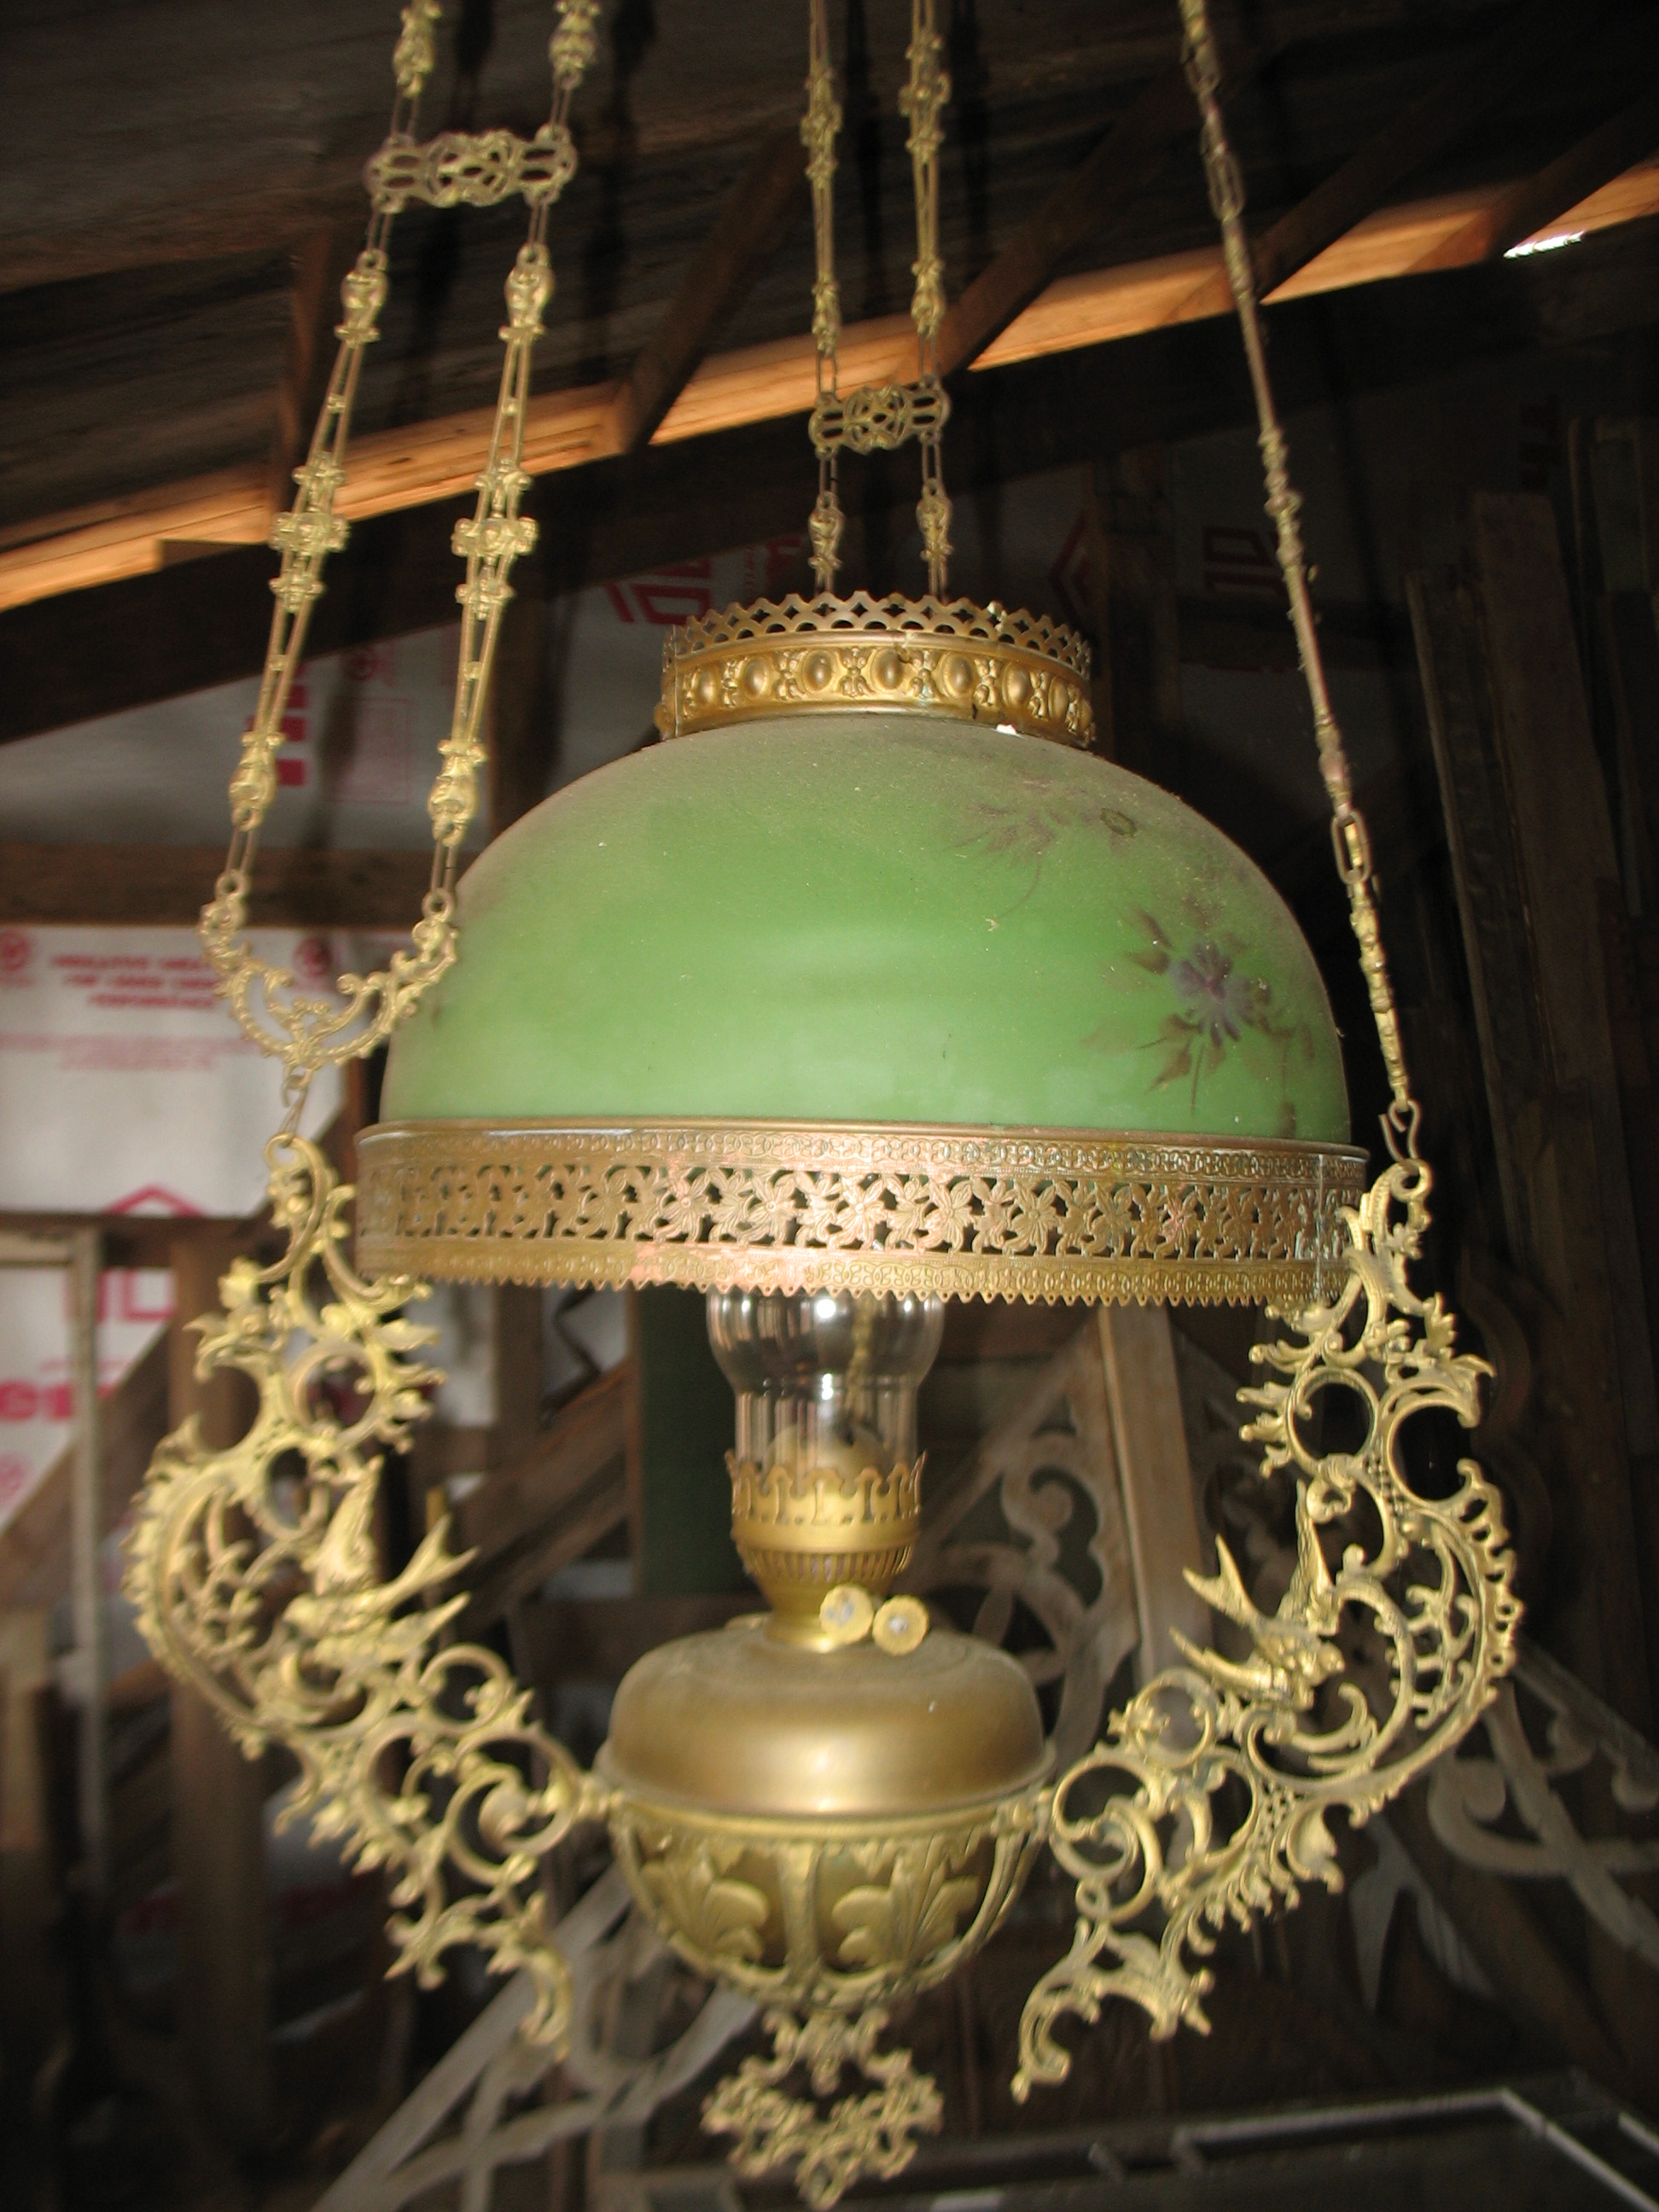 THE VERY BEST THAT THE VICTORIAN ERA MADE !!! THIS LIGHT FIXTURE IS IT!!! AS YOU WILL SEE FROM THE CLOSE UPS THIS IS DECORATIVE BRASS WITH SWALLOWS ON EITHER SIDE. A BEAUTIFUL DECORATIVE CHAIN EXTENDS TO THE PULLY AT THE TOP. MUST HANG IN A VISIBLE PLACE OVER A TABLE OR IN THE VESTIBULE OF A HOME. IT COULD BE THAT 'ONE-OF-A-KIND' PIECE' THAT EVERYONE WOULD APPRECIATE.